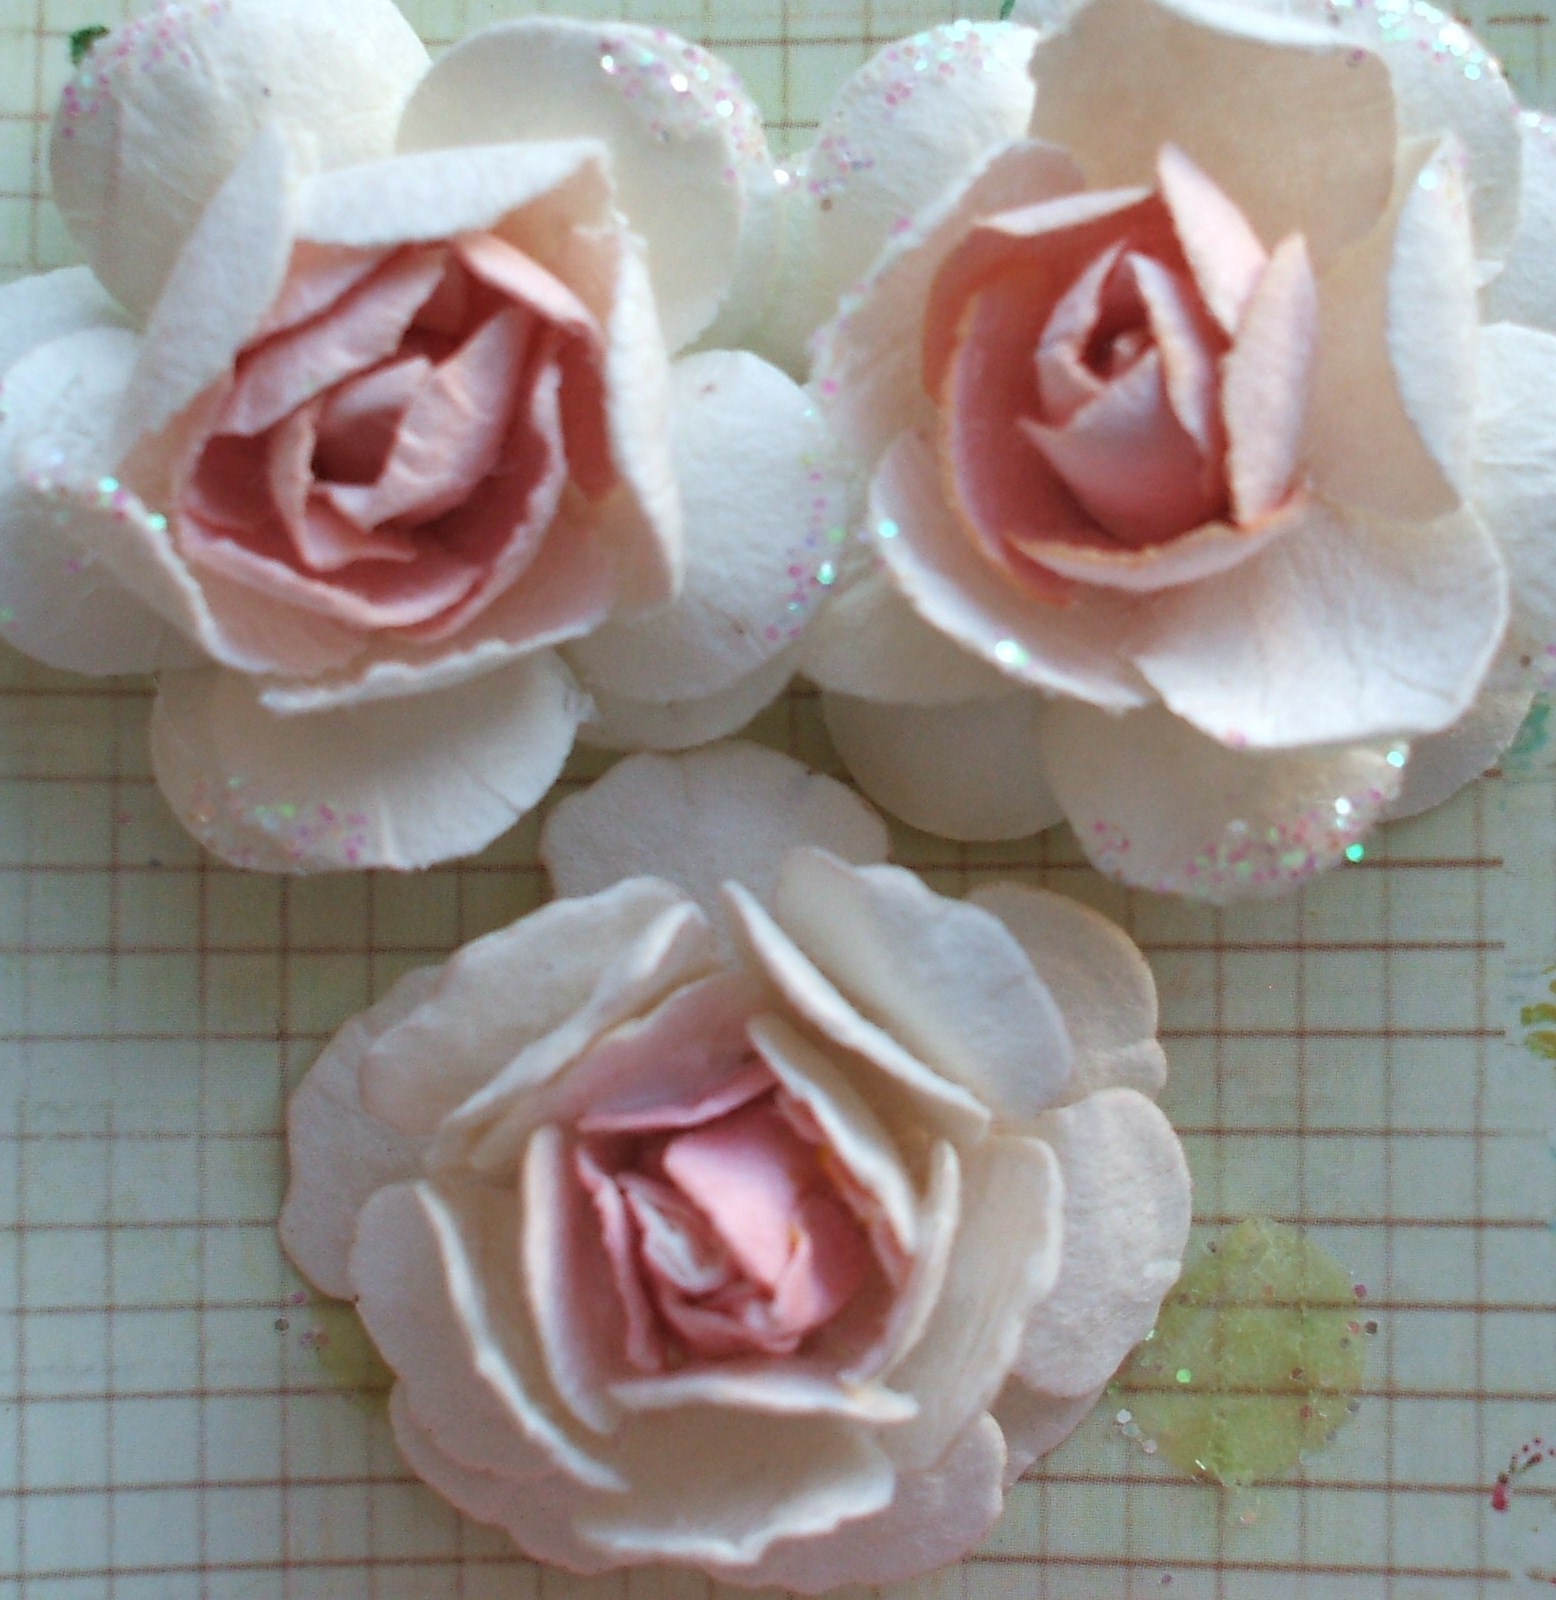 Live the dream prima style flower tutorial prima style flower tutorial mightylinksfo